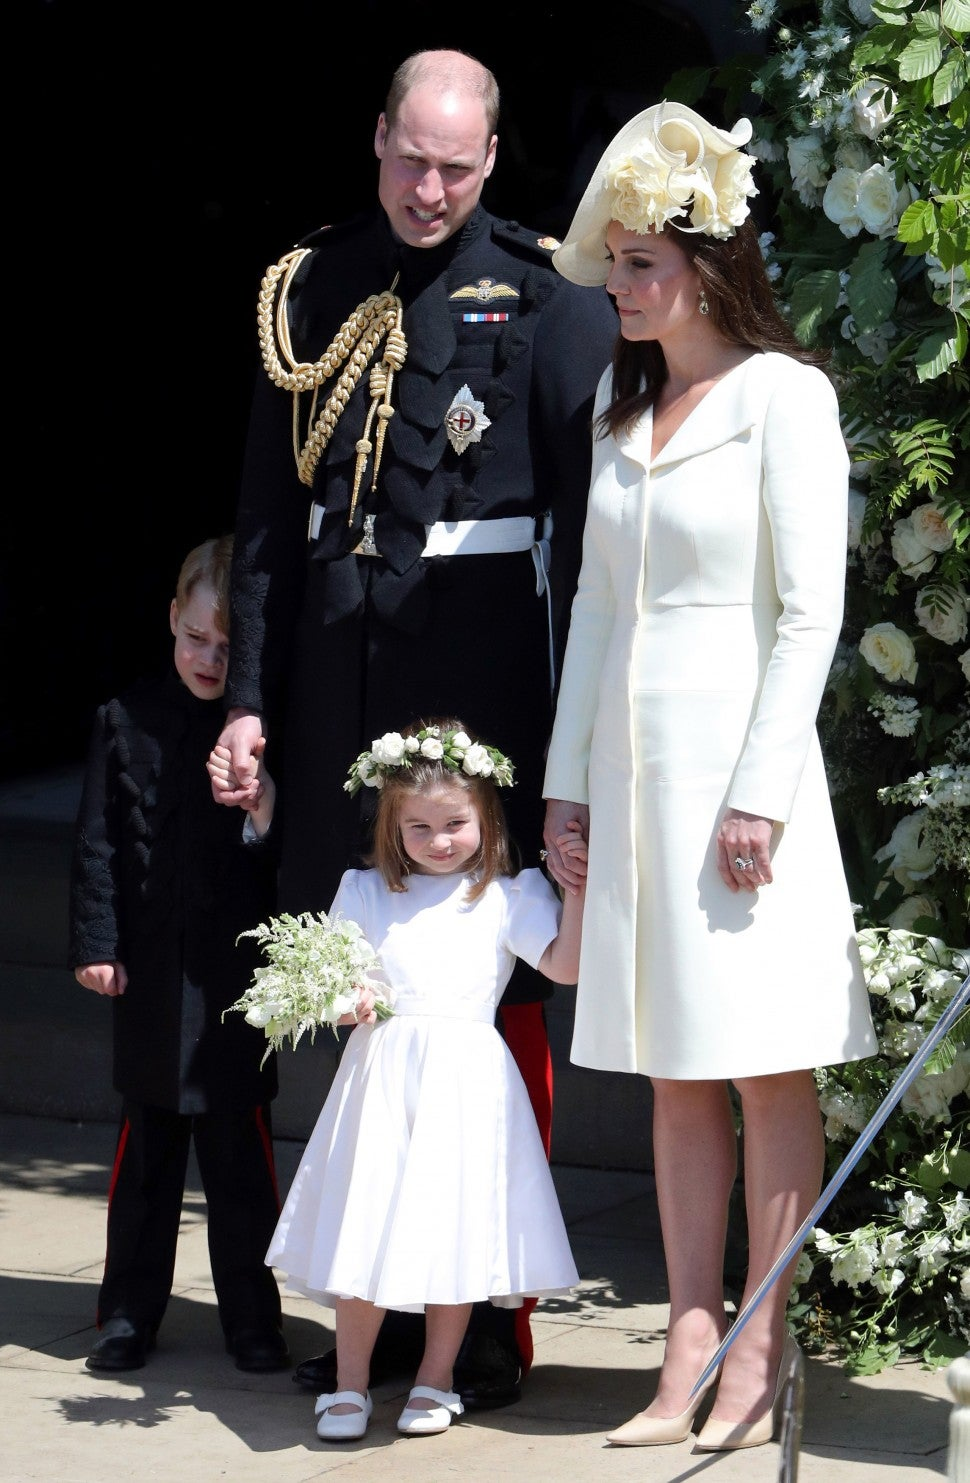 prince william, kate middleton, prince george & princess charlotte at prince harry's wedding